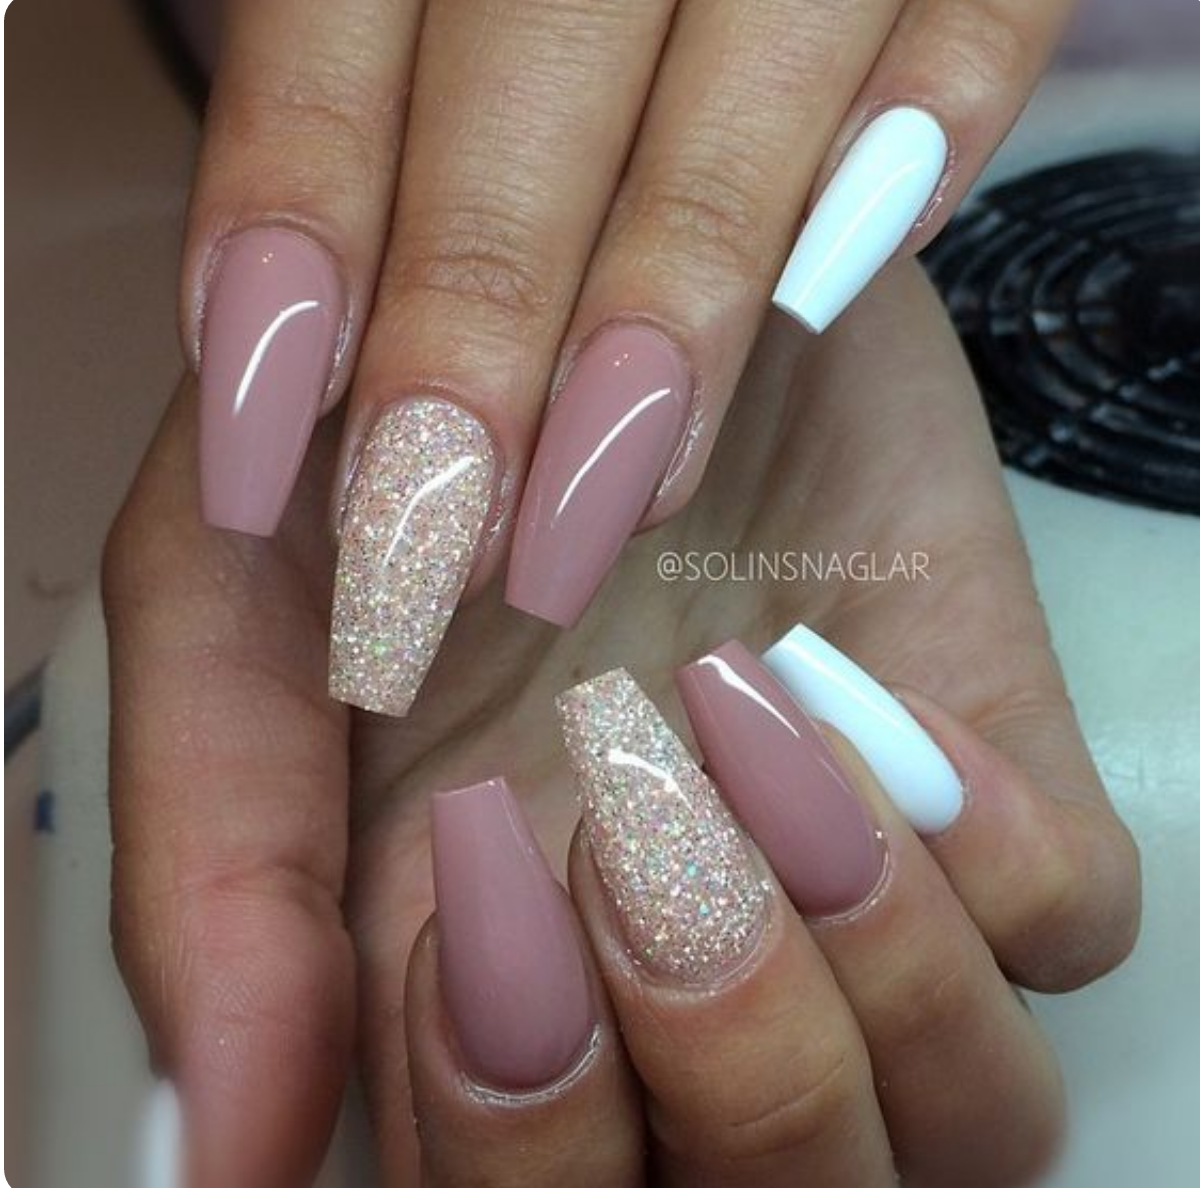 Pin von Shenika Rich auf Nails | Pinterest | Nageldesign ...